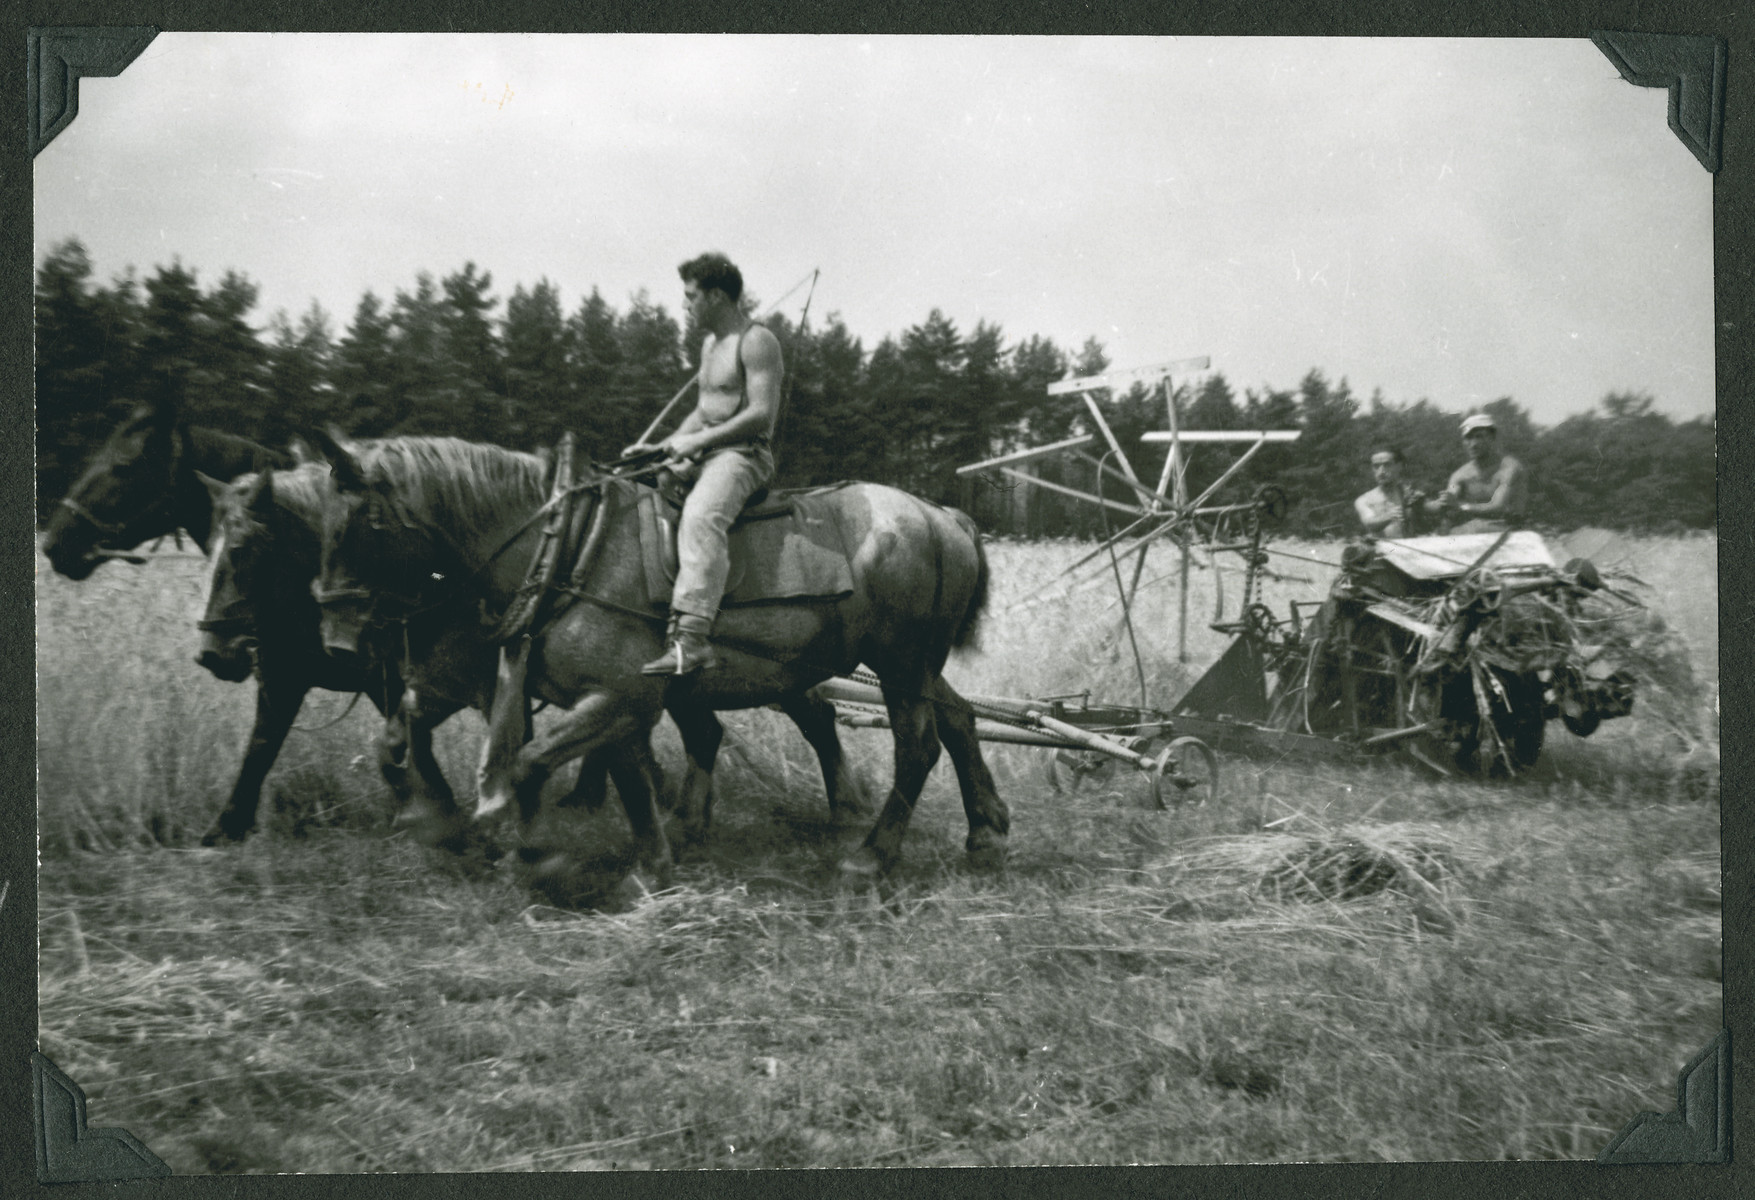 """A farmer works a field in Kibbutz Buchenwald.  The original caption says: """"Kibbutz Buchenwald.  Reaping the wheat.  The Zionist flag flying proudly over the Jewish Farm.  A little piece of Palestine in Deutschland."""""""